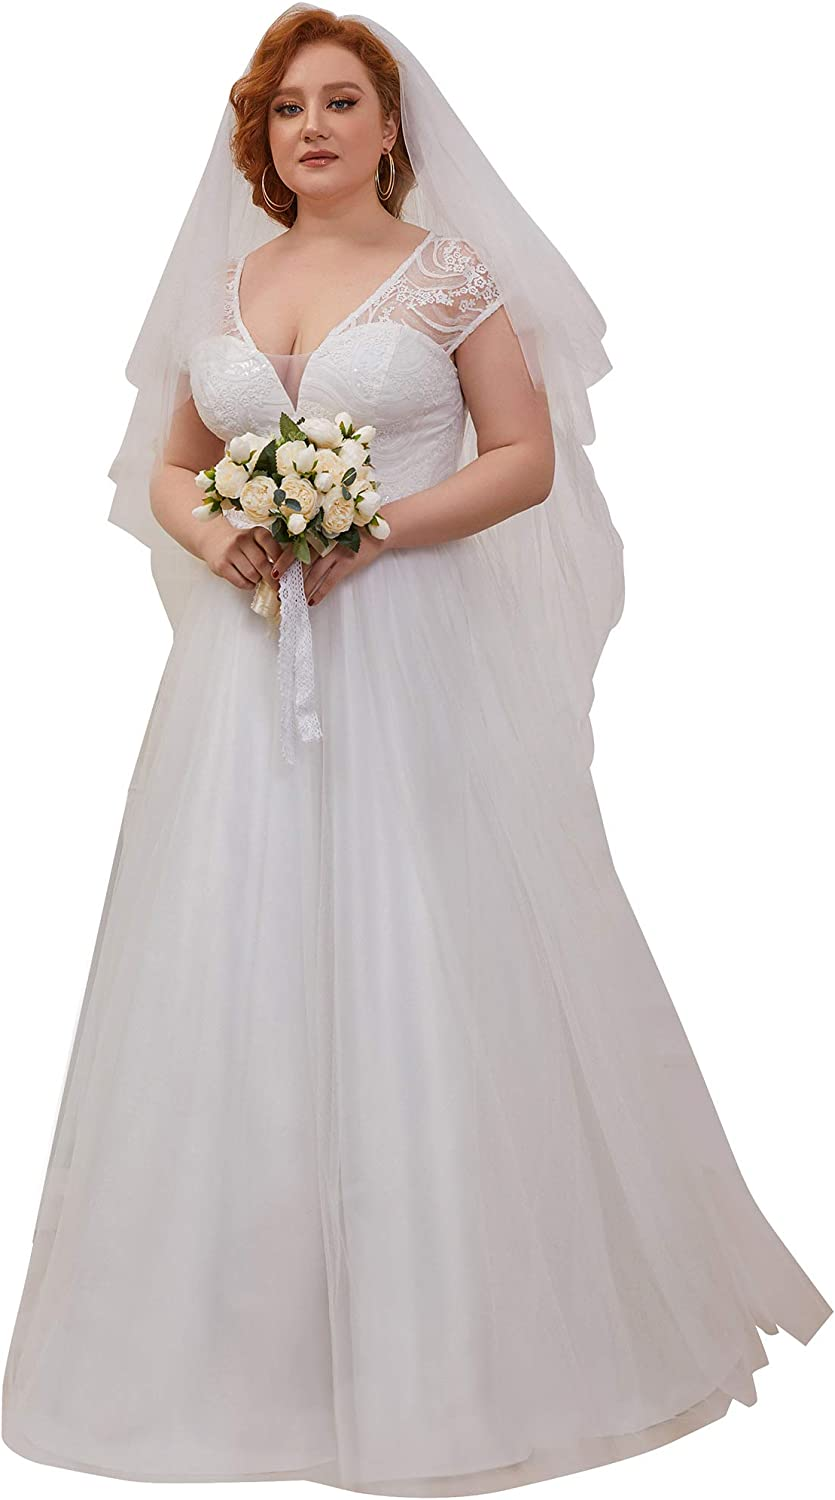 Ever-Pretty Womens V Neck Lace Embroidered A Line Simple Wedding Dress 0235-PZ